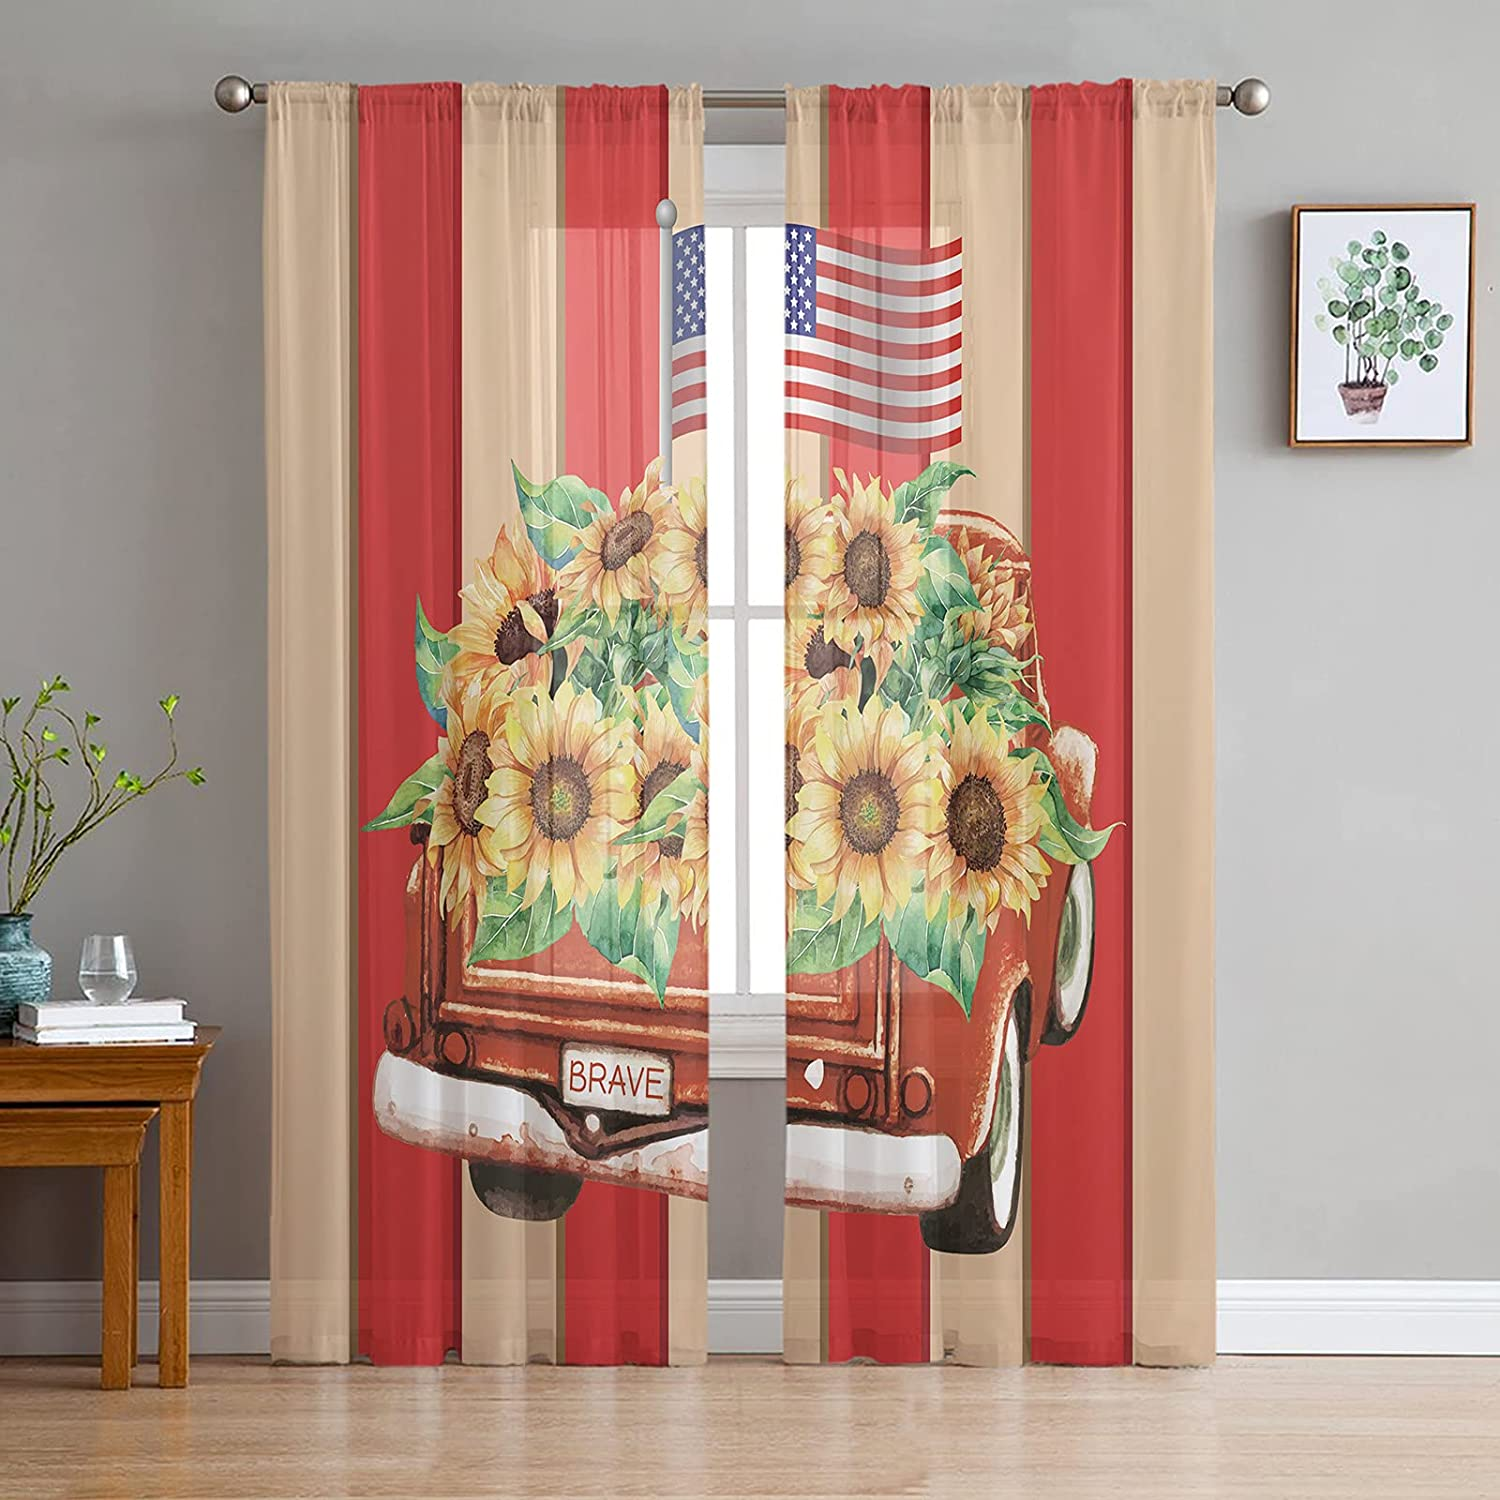 Sheer Voile Chiffon Overseas Jacksonville Mall parallel import regular item Window Curtains Wrinkle Fre Touch Soft with